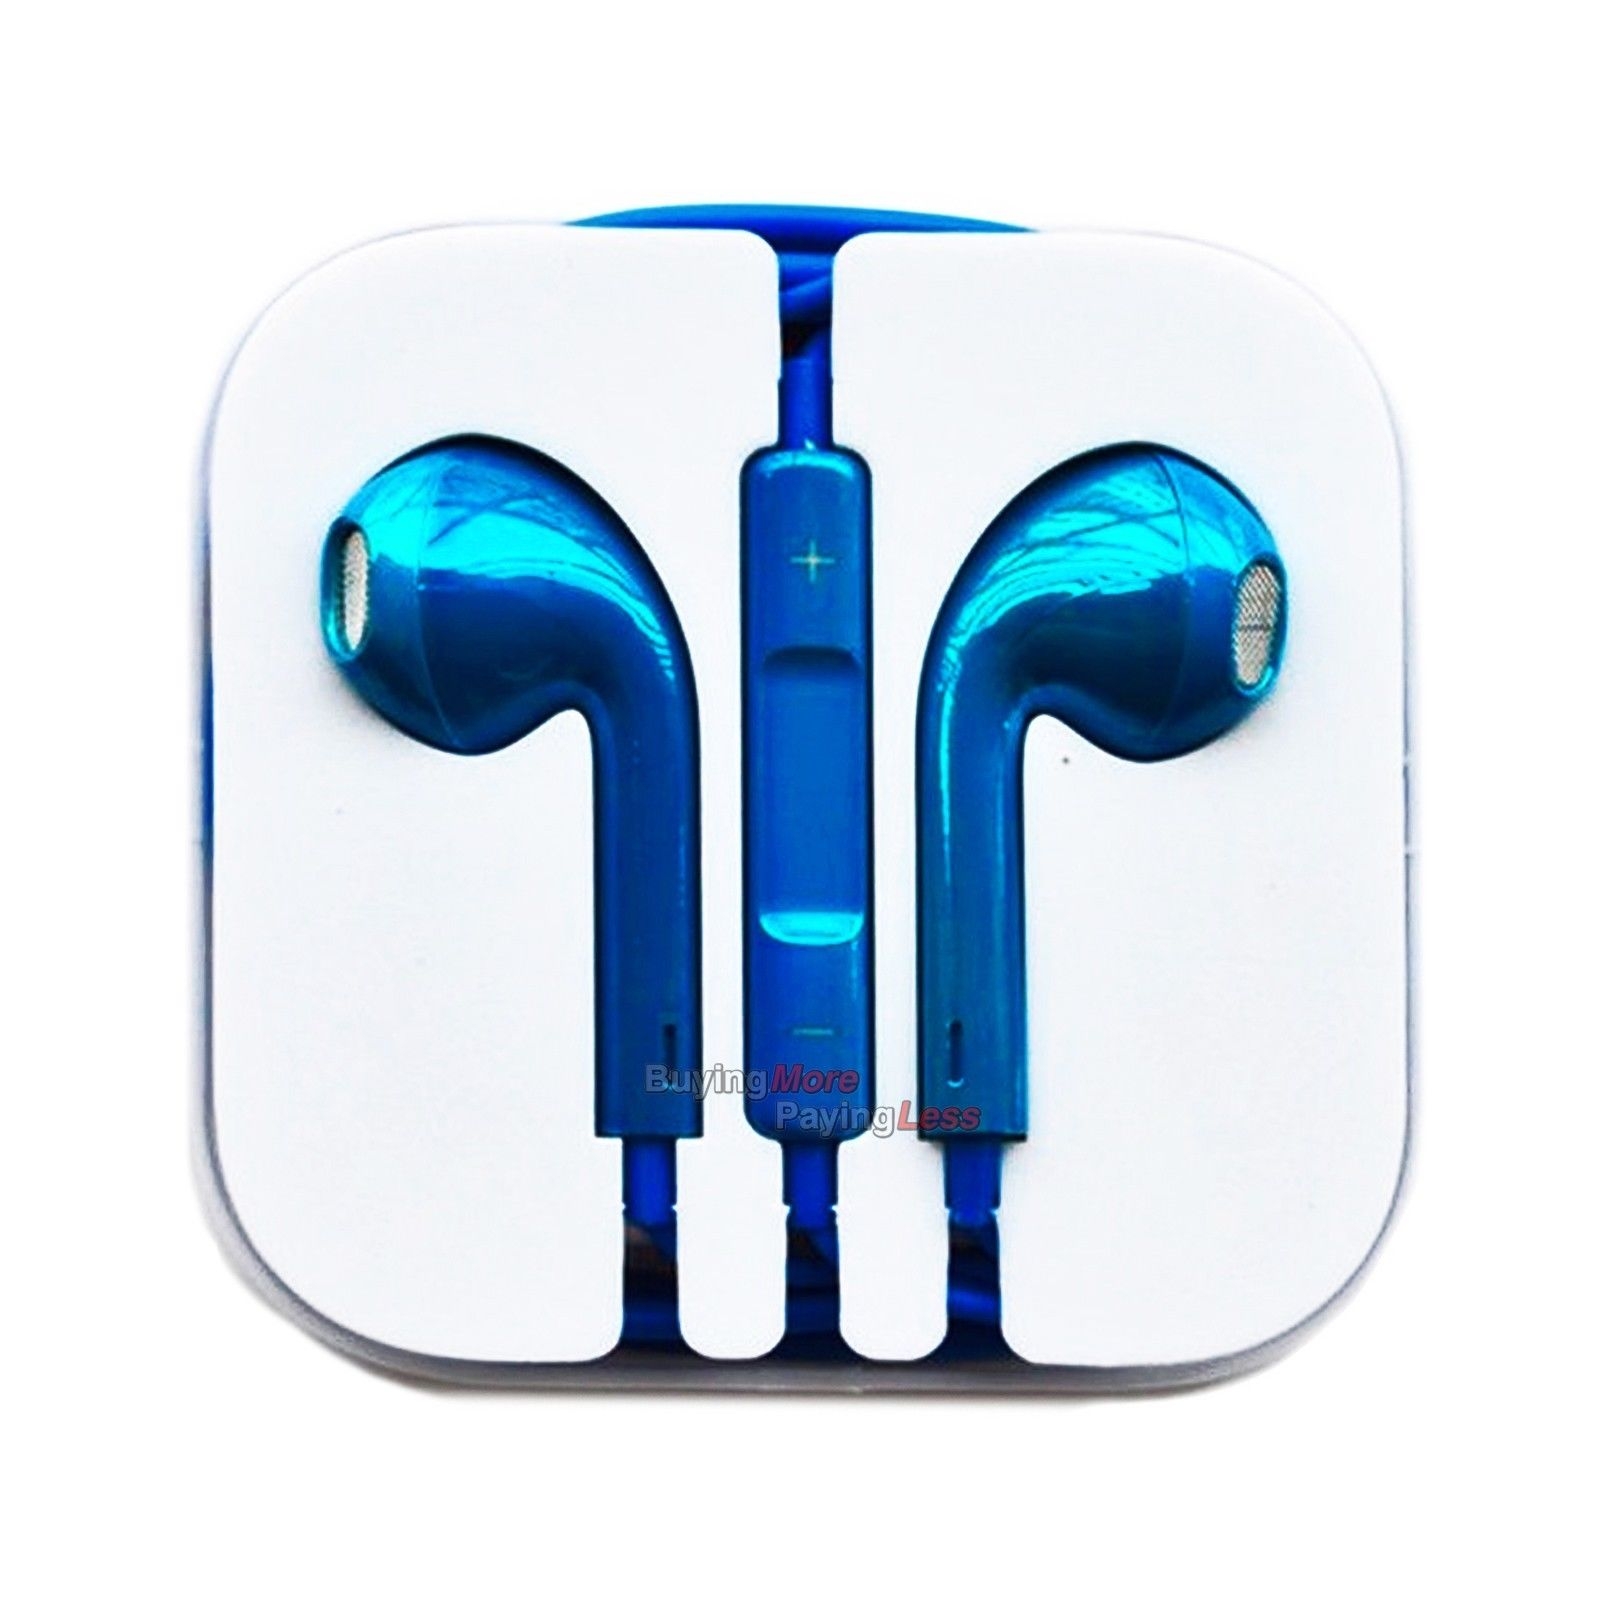 Earbuds with microphone for iphone - gold earbuds with microphone